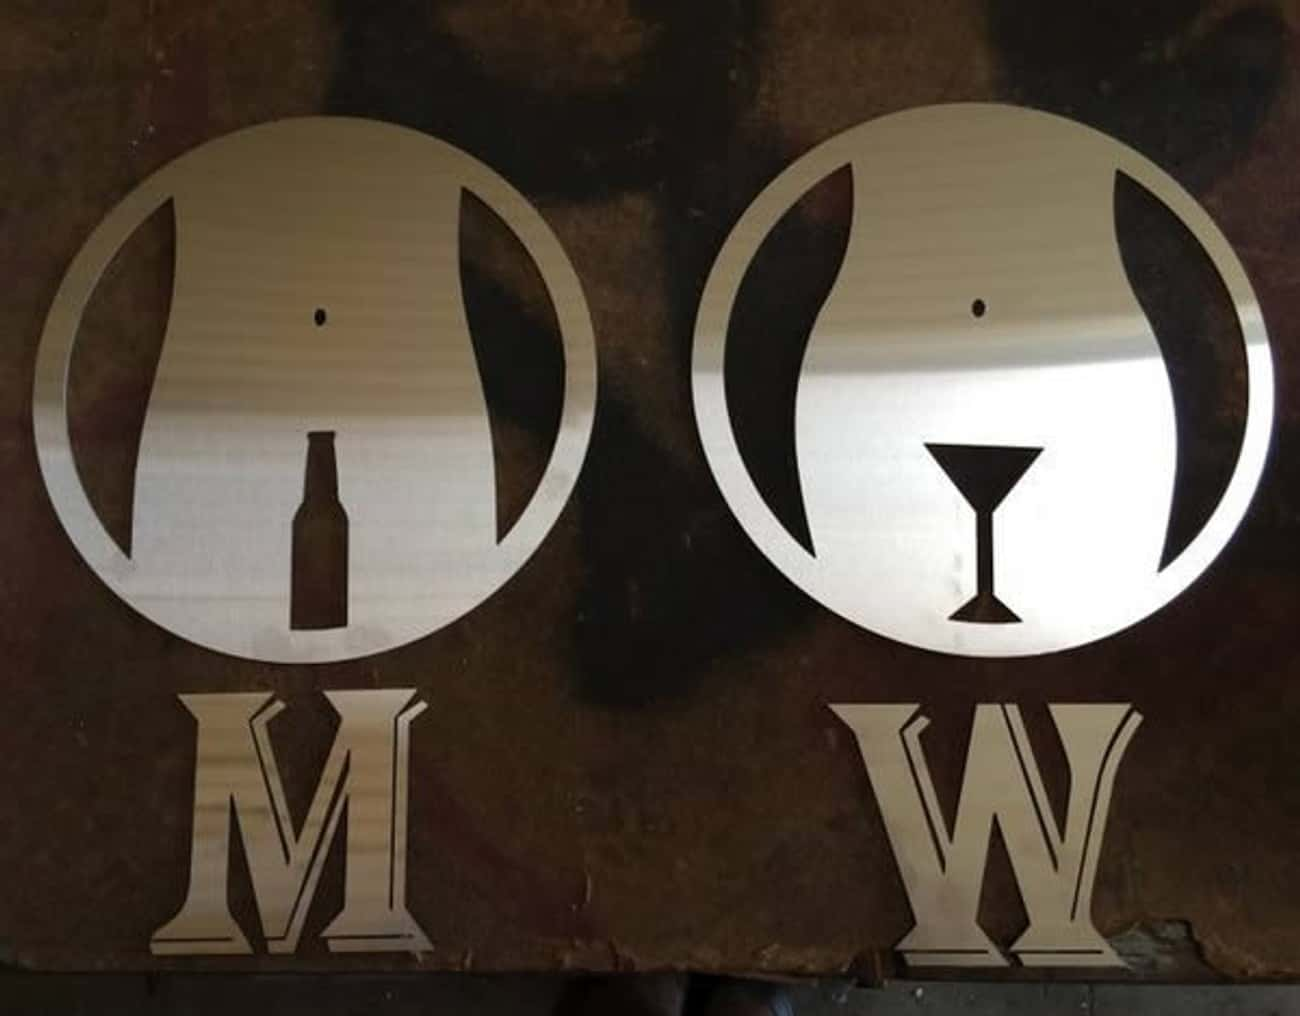 This Clever Sign May Explain Why Men Love Beer and Women Love Cosmos